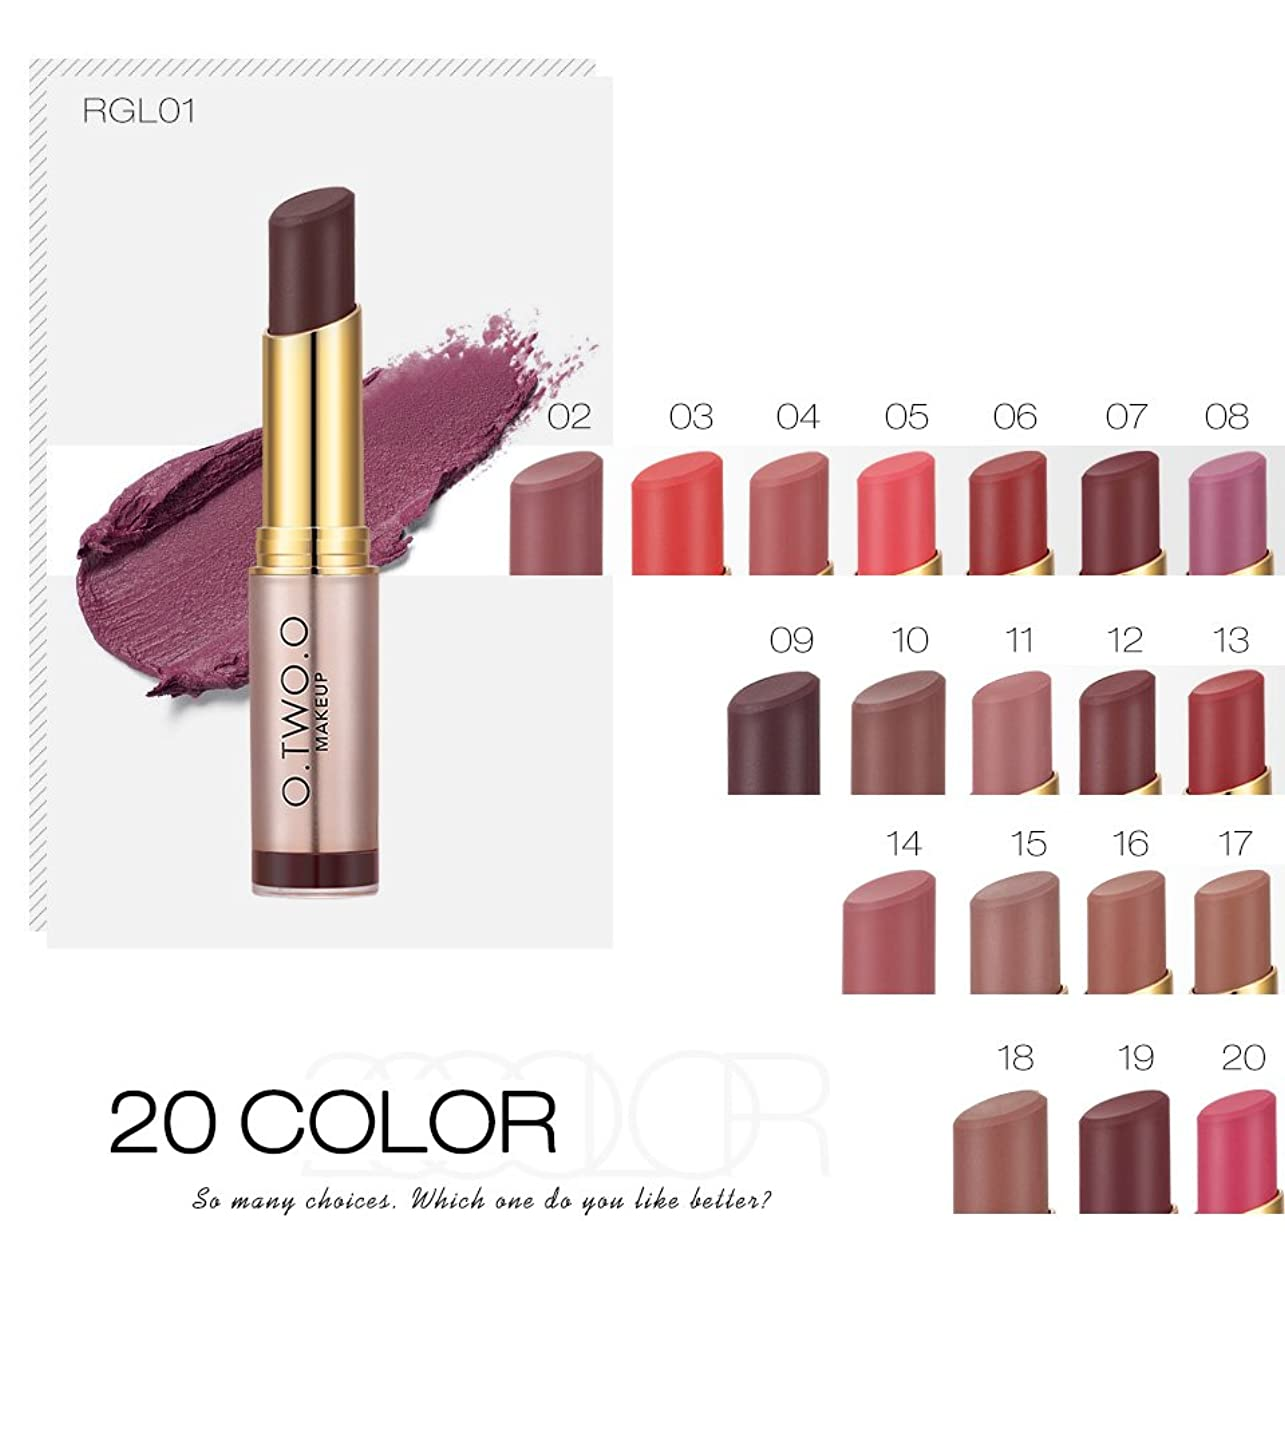 管理者真珠のようなエクステント(RGL01) Brand Wholesale Beauty Makeup Lipstick Popular Colors Best Seller Long Lasting Lip Kit Matte Lip Cosmetics